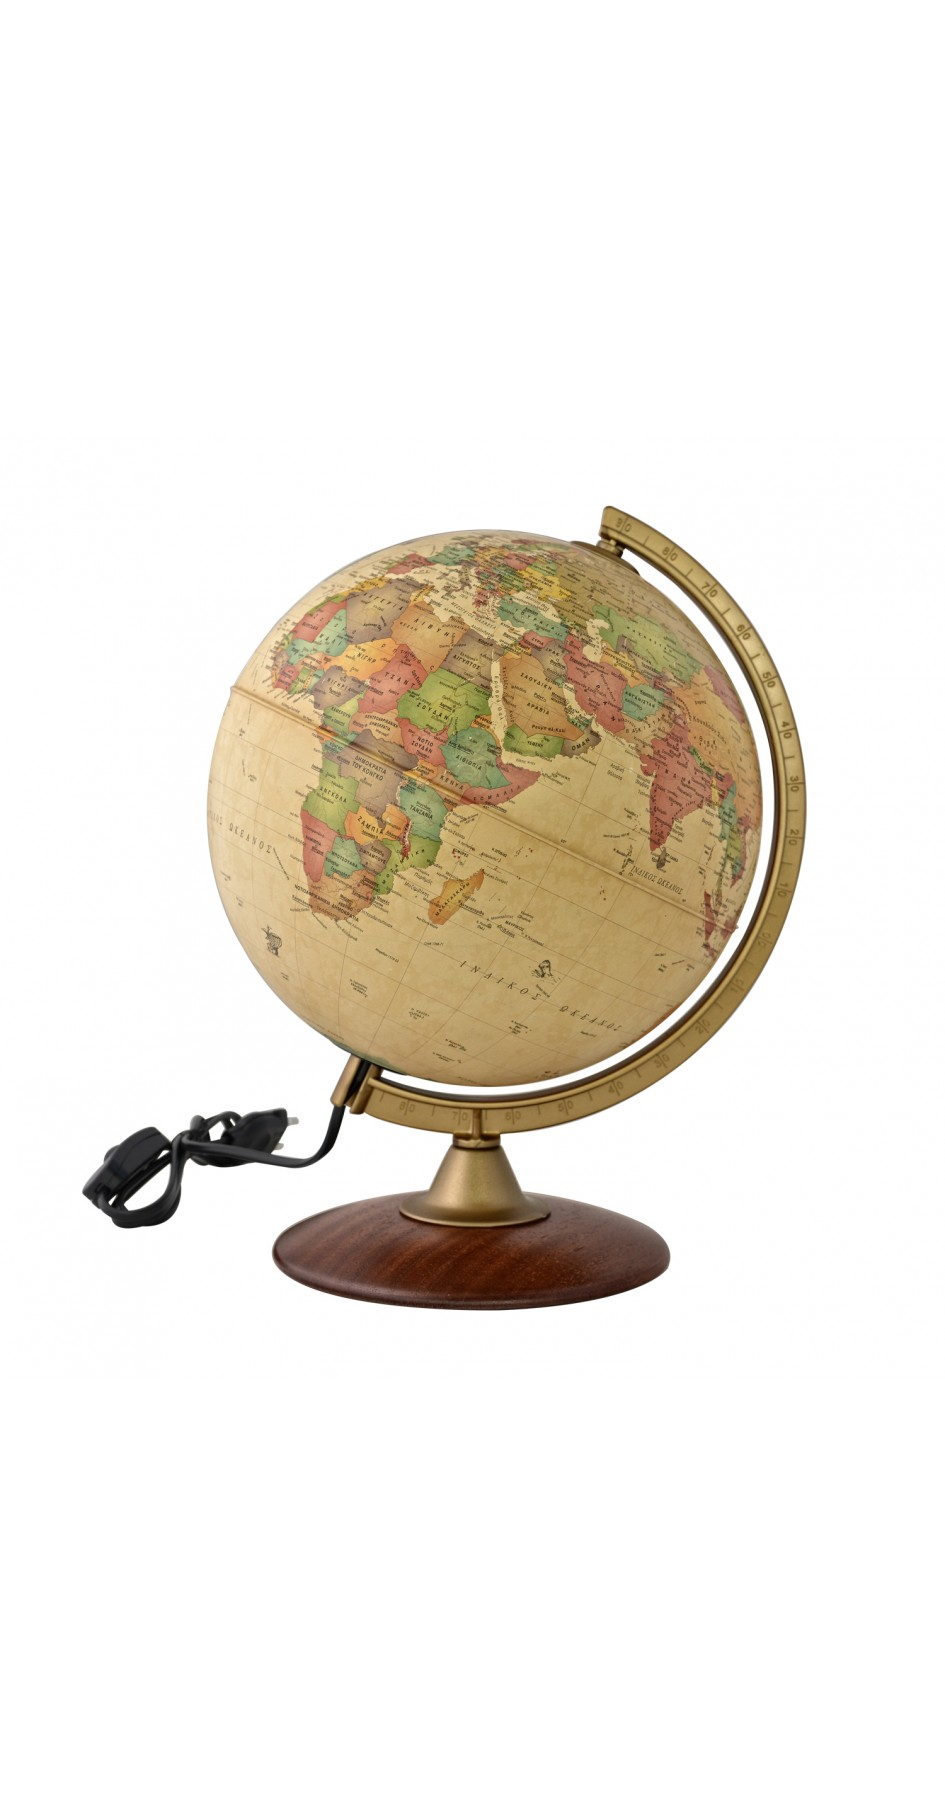 Globe Antique 30 cm in Greek with wooden base